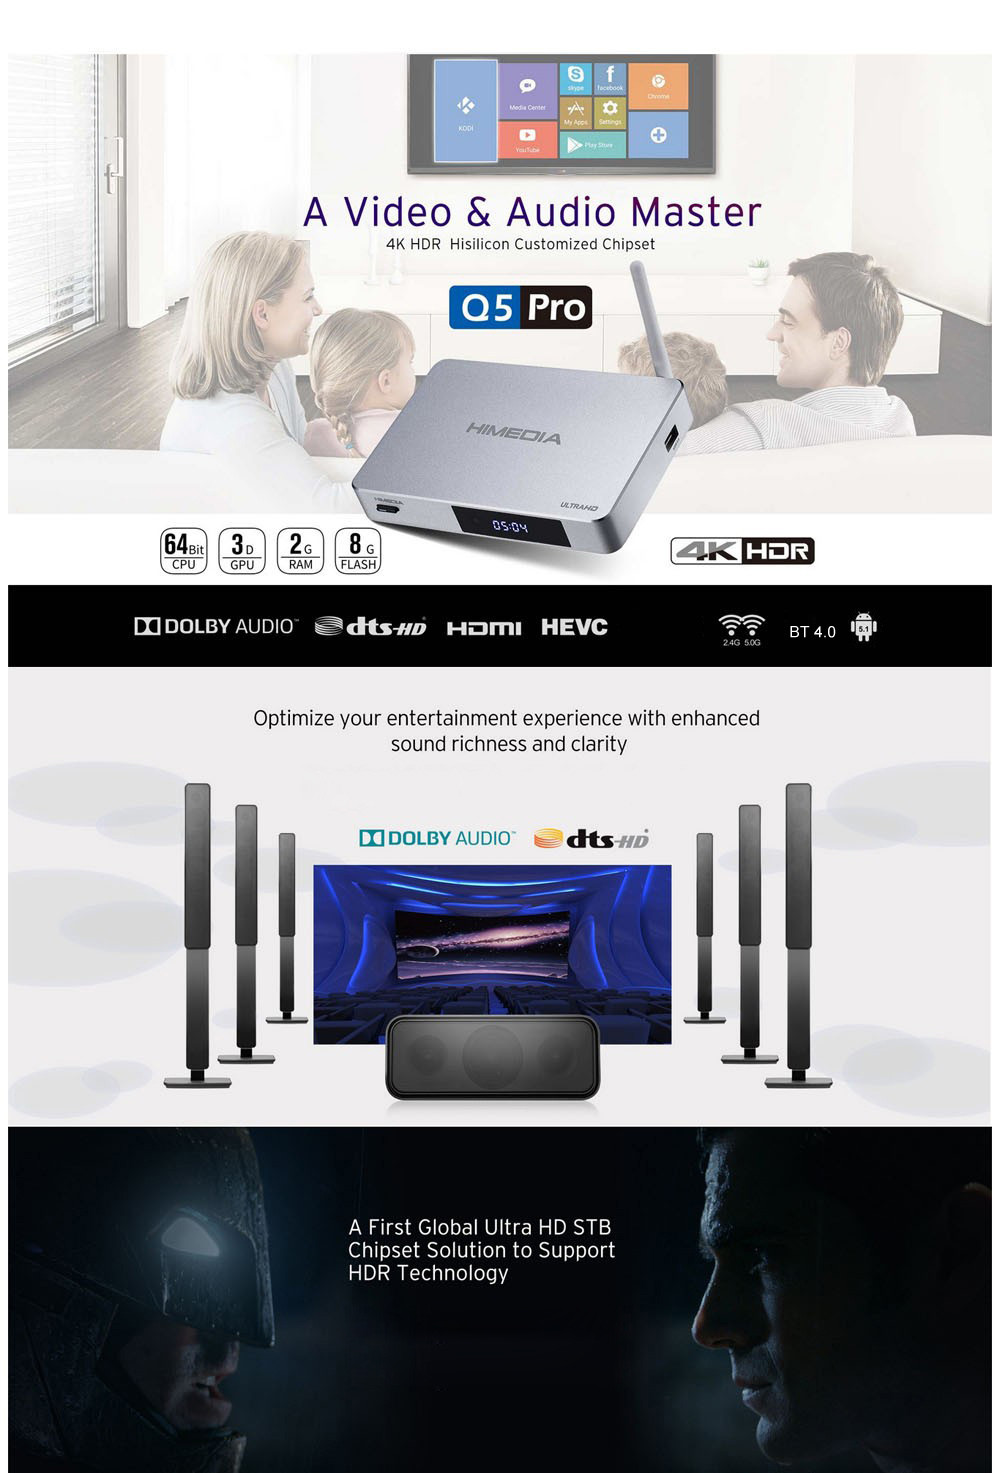 Himedia Q5 Pro TV Box Hi3798CV200 Quad Core Android 5.1.1 OS with KODI 16.1 1000M Dual Band WiFi Bluetooth 4.0